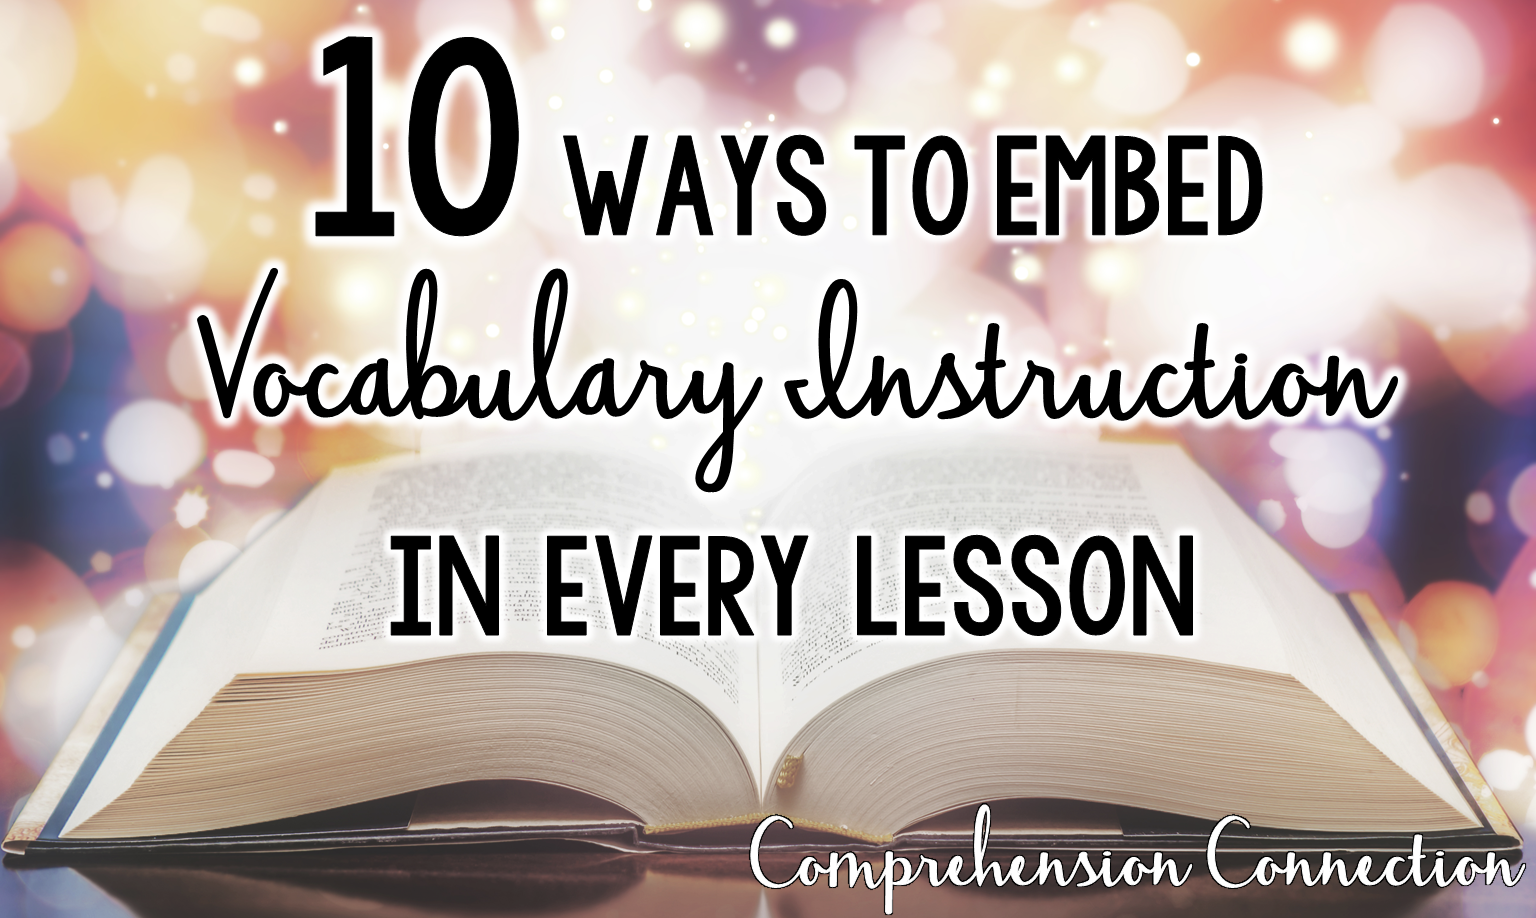 10 Ways To Embed Vocabulary Instruction Into Every Lesson